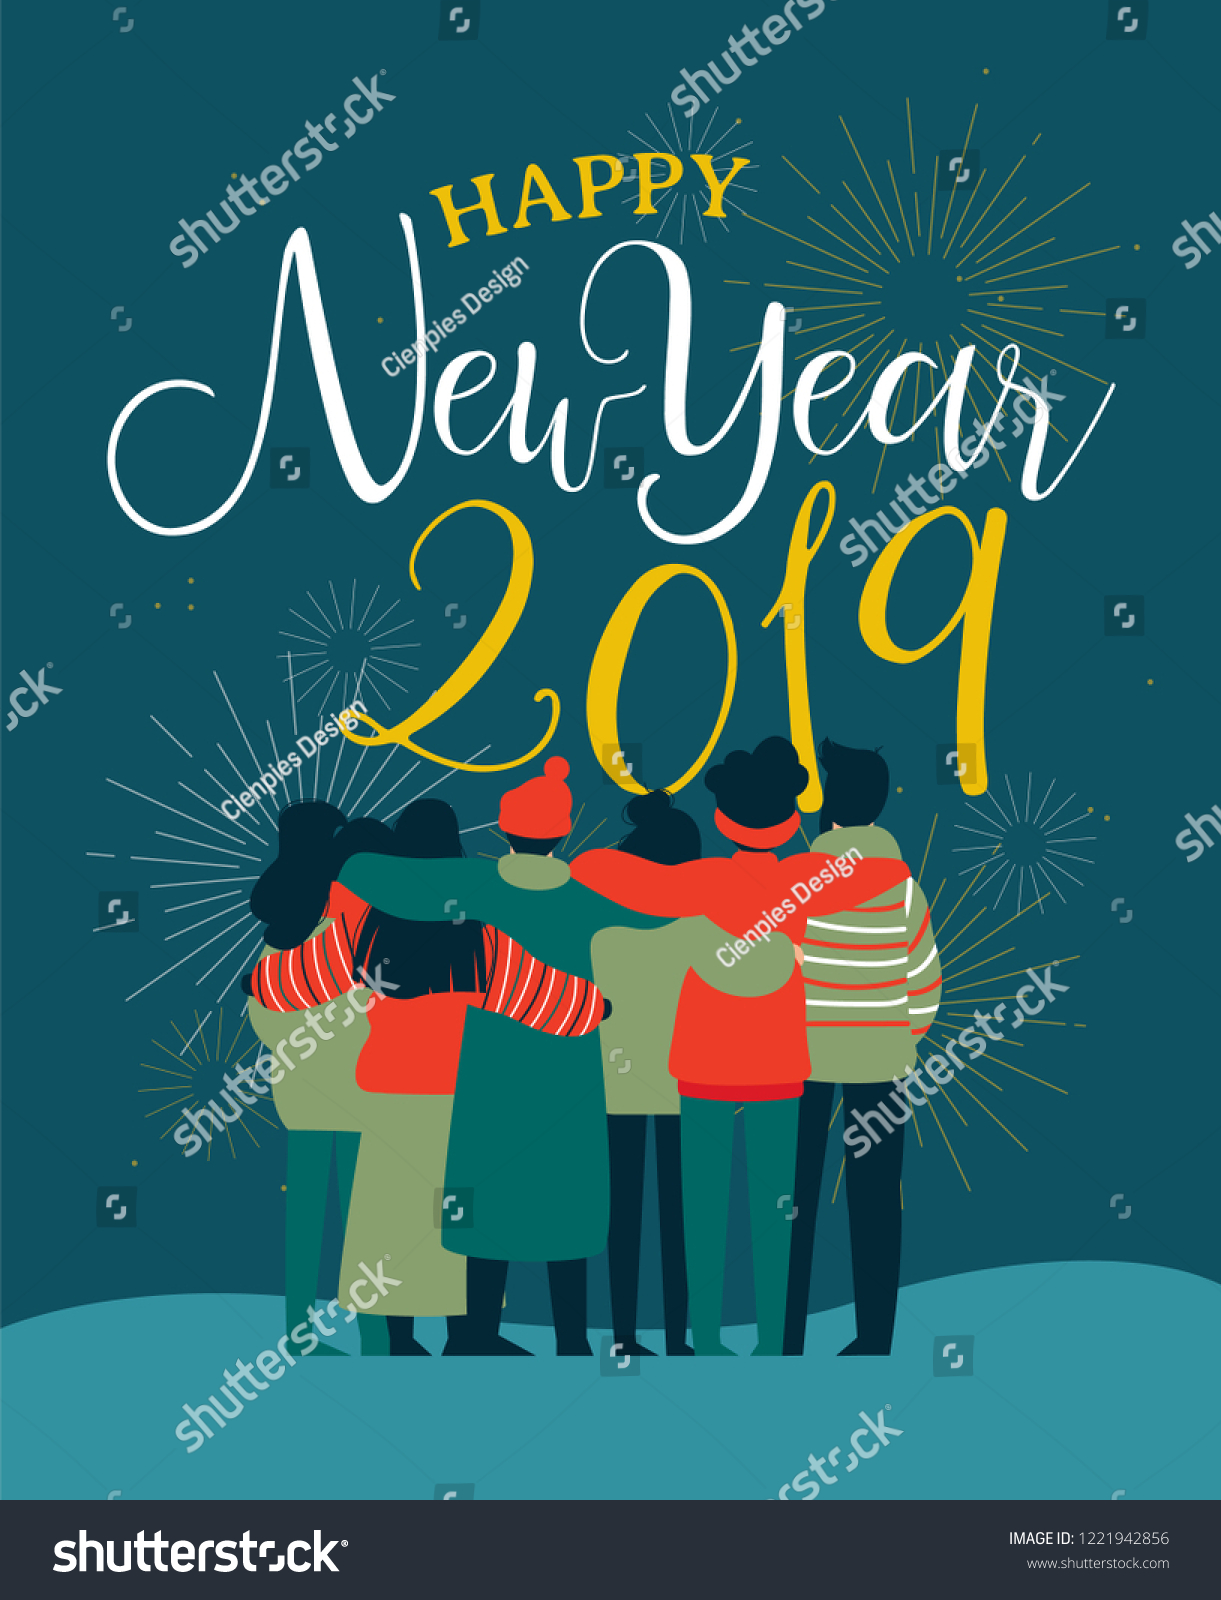 happy new year 2019 greeting card illustration of young people friend group hugging together with fireworks